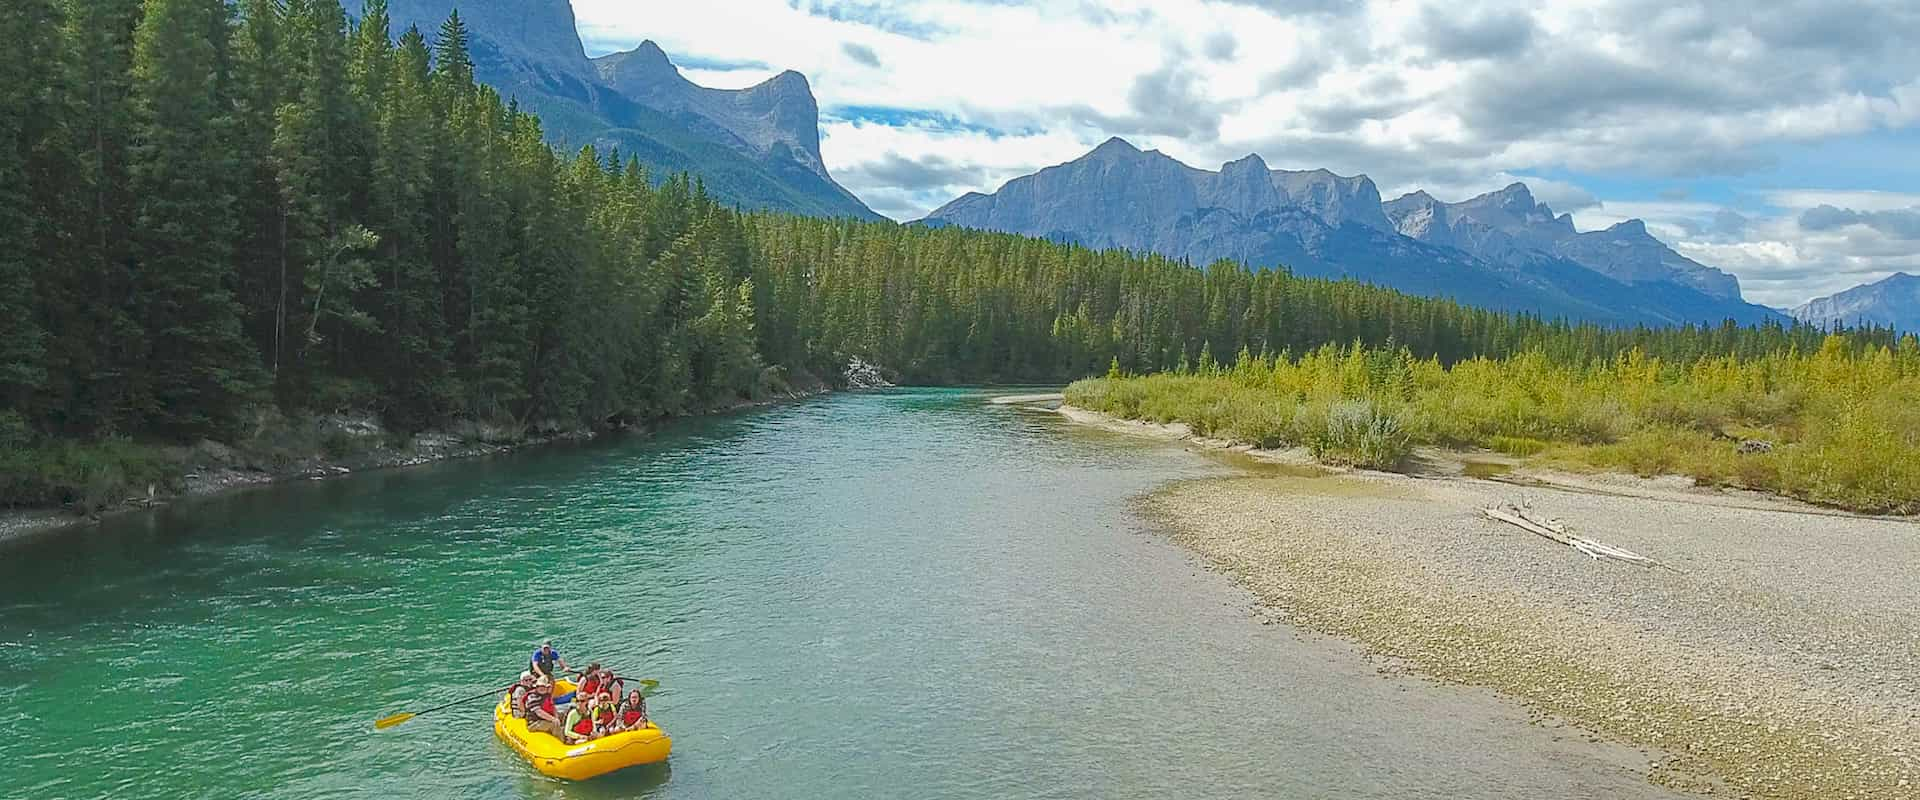 Take a scenic float along the Bow River near Banff in the Canadian Rockies